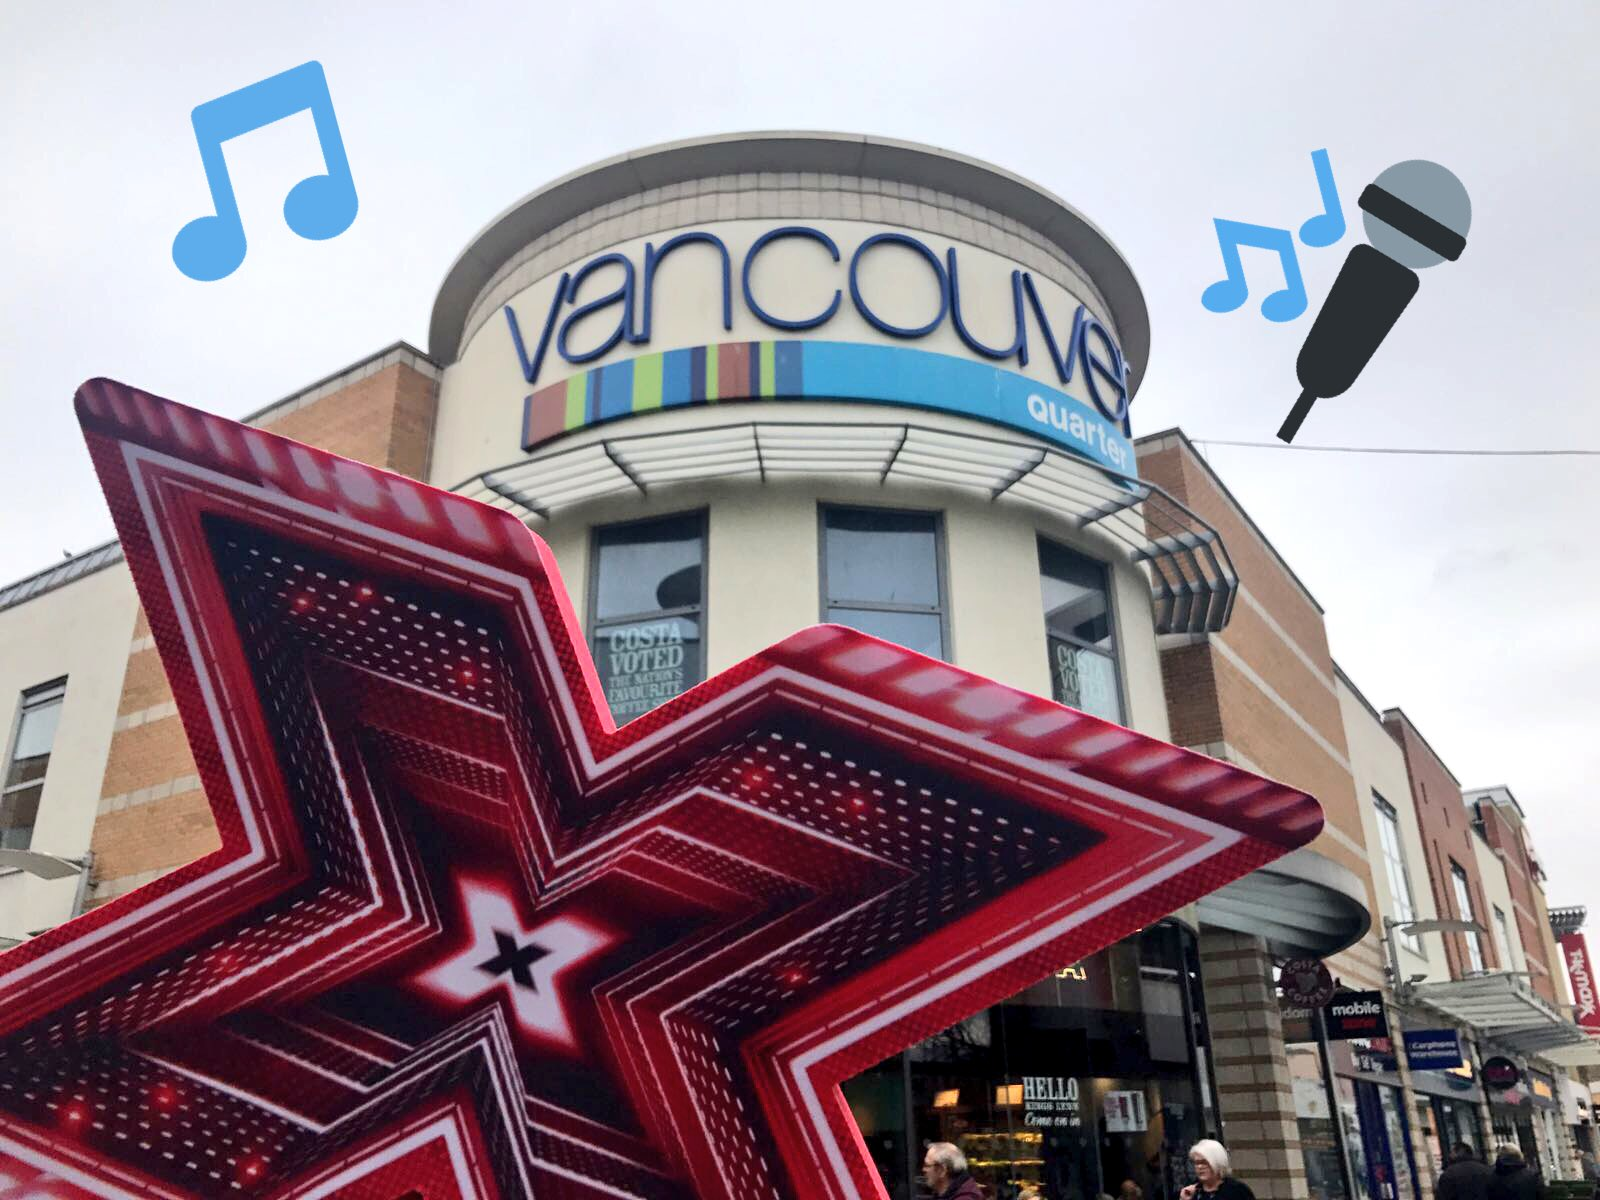 King's Lynn, #XFactor auditions have arrived! 🎤 If you're aged 14 or over, get to Vancouver Quarter until 5pm today! https://t.co/CbEaQAqdJn